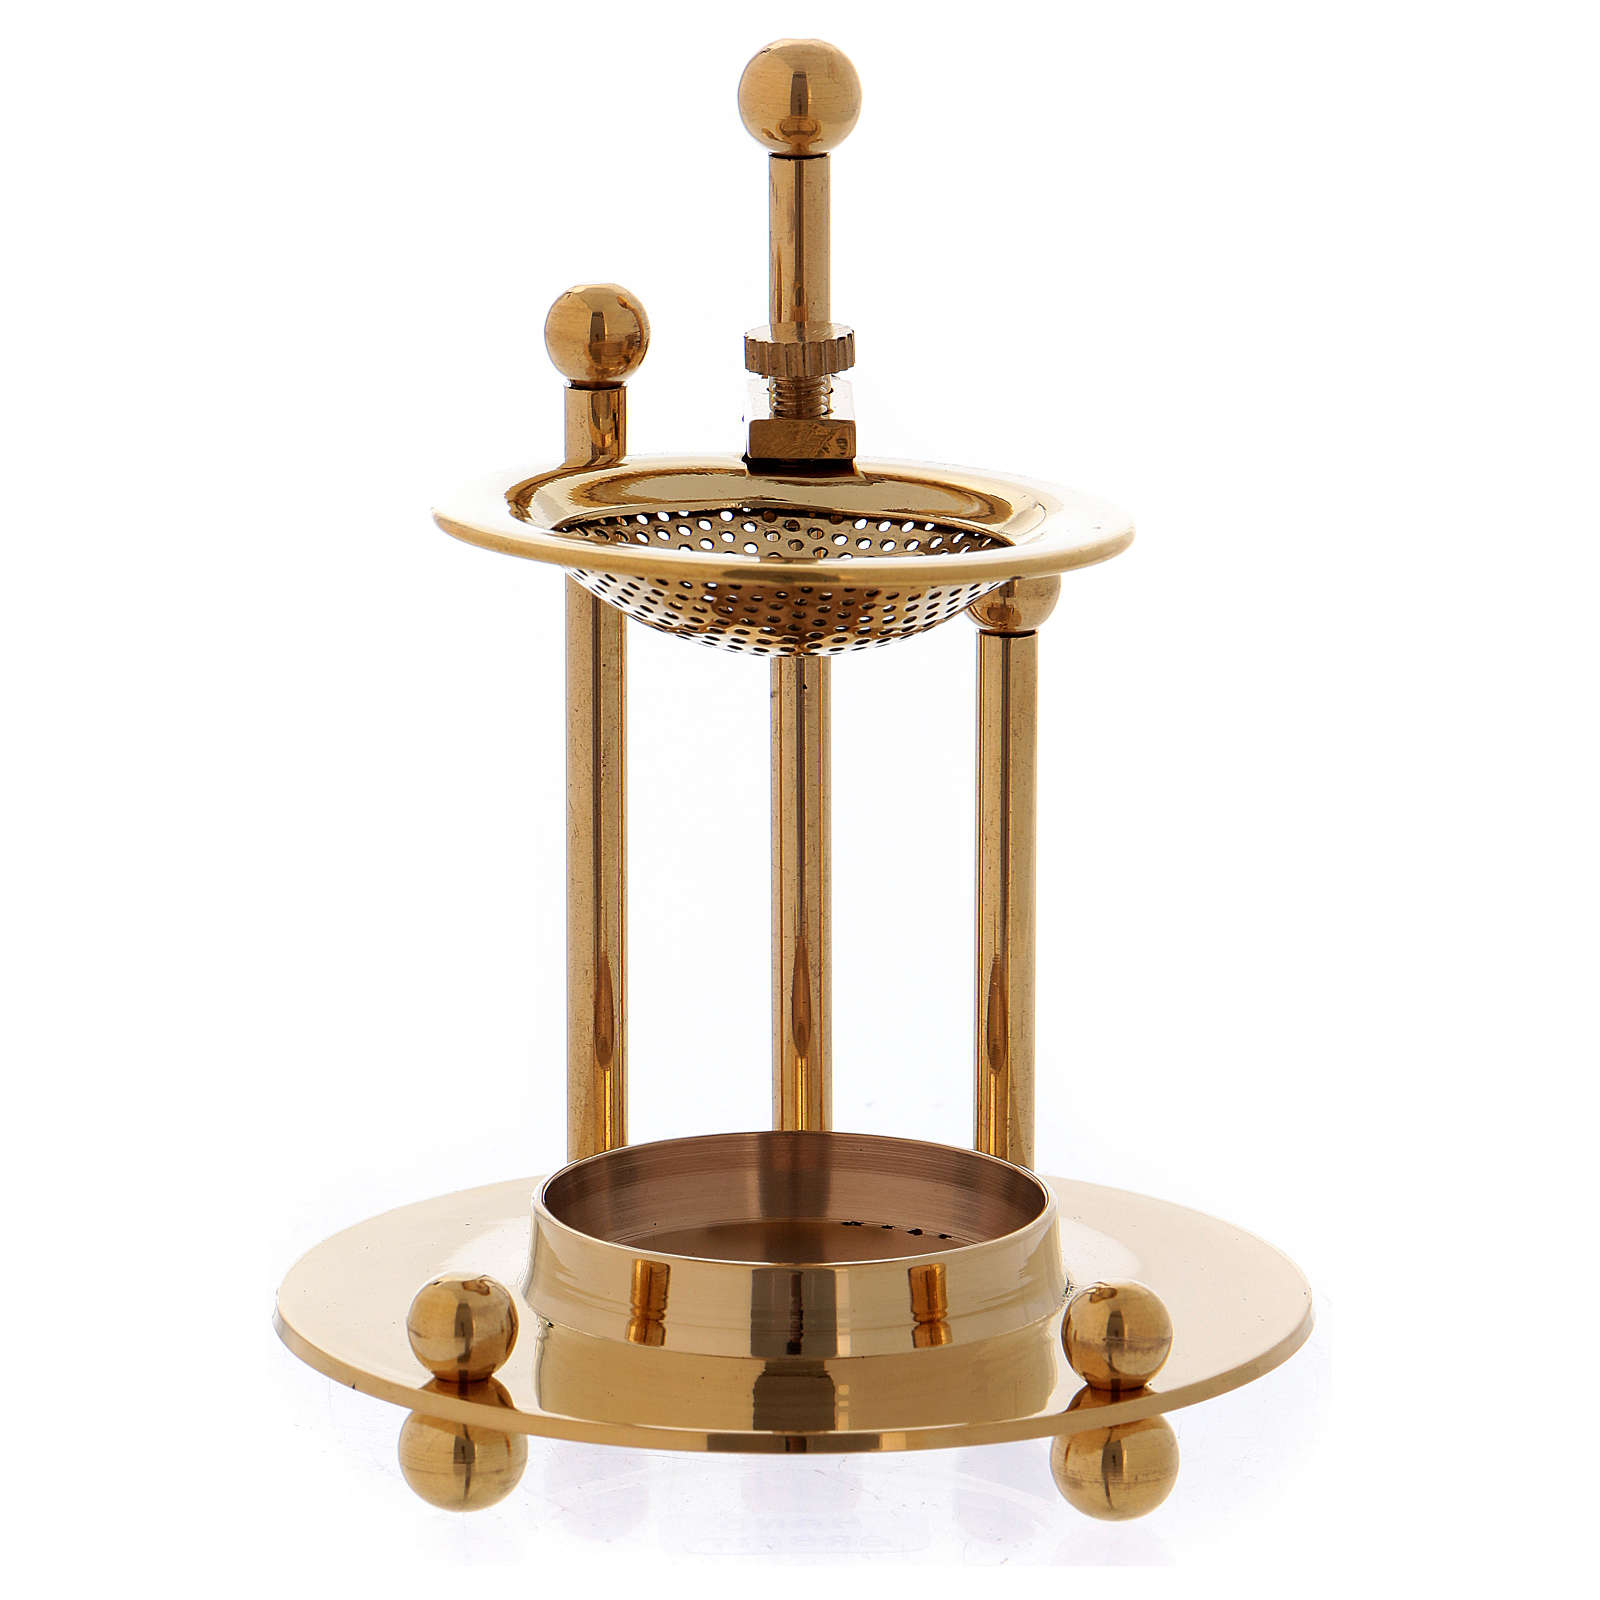 Two-level incense burner in glossy gold-plated brass 3